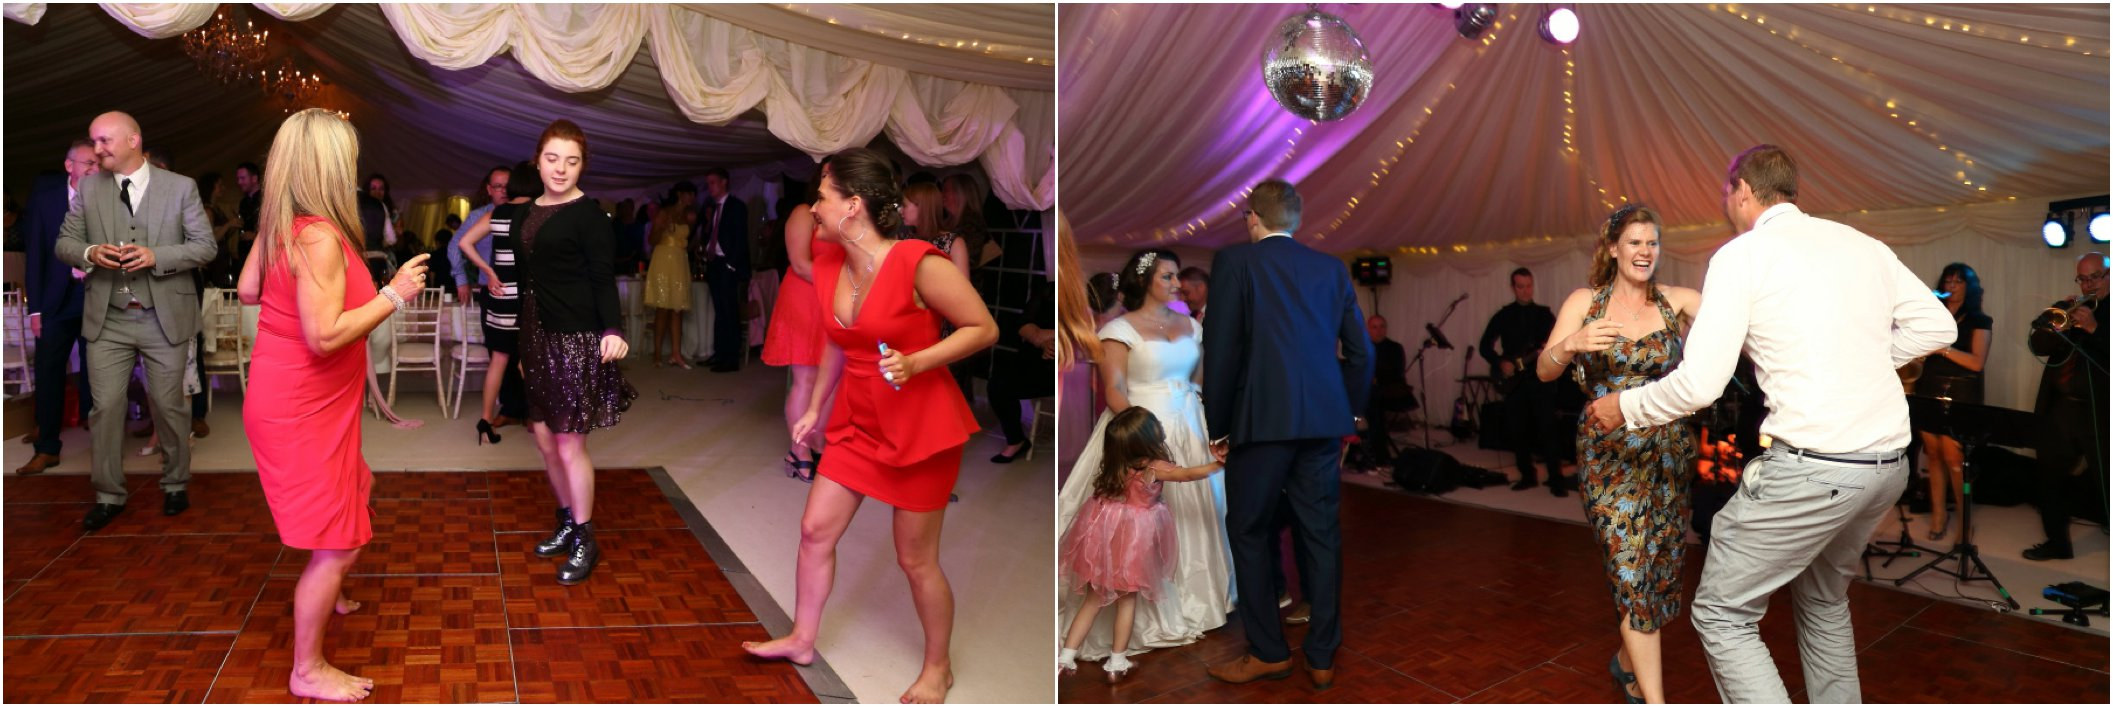 essex-alternative-wedding-photography_0083